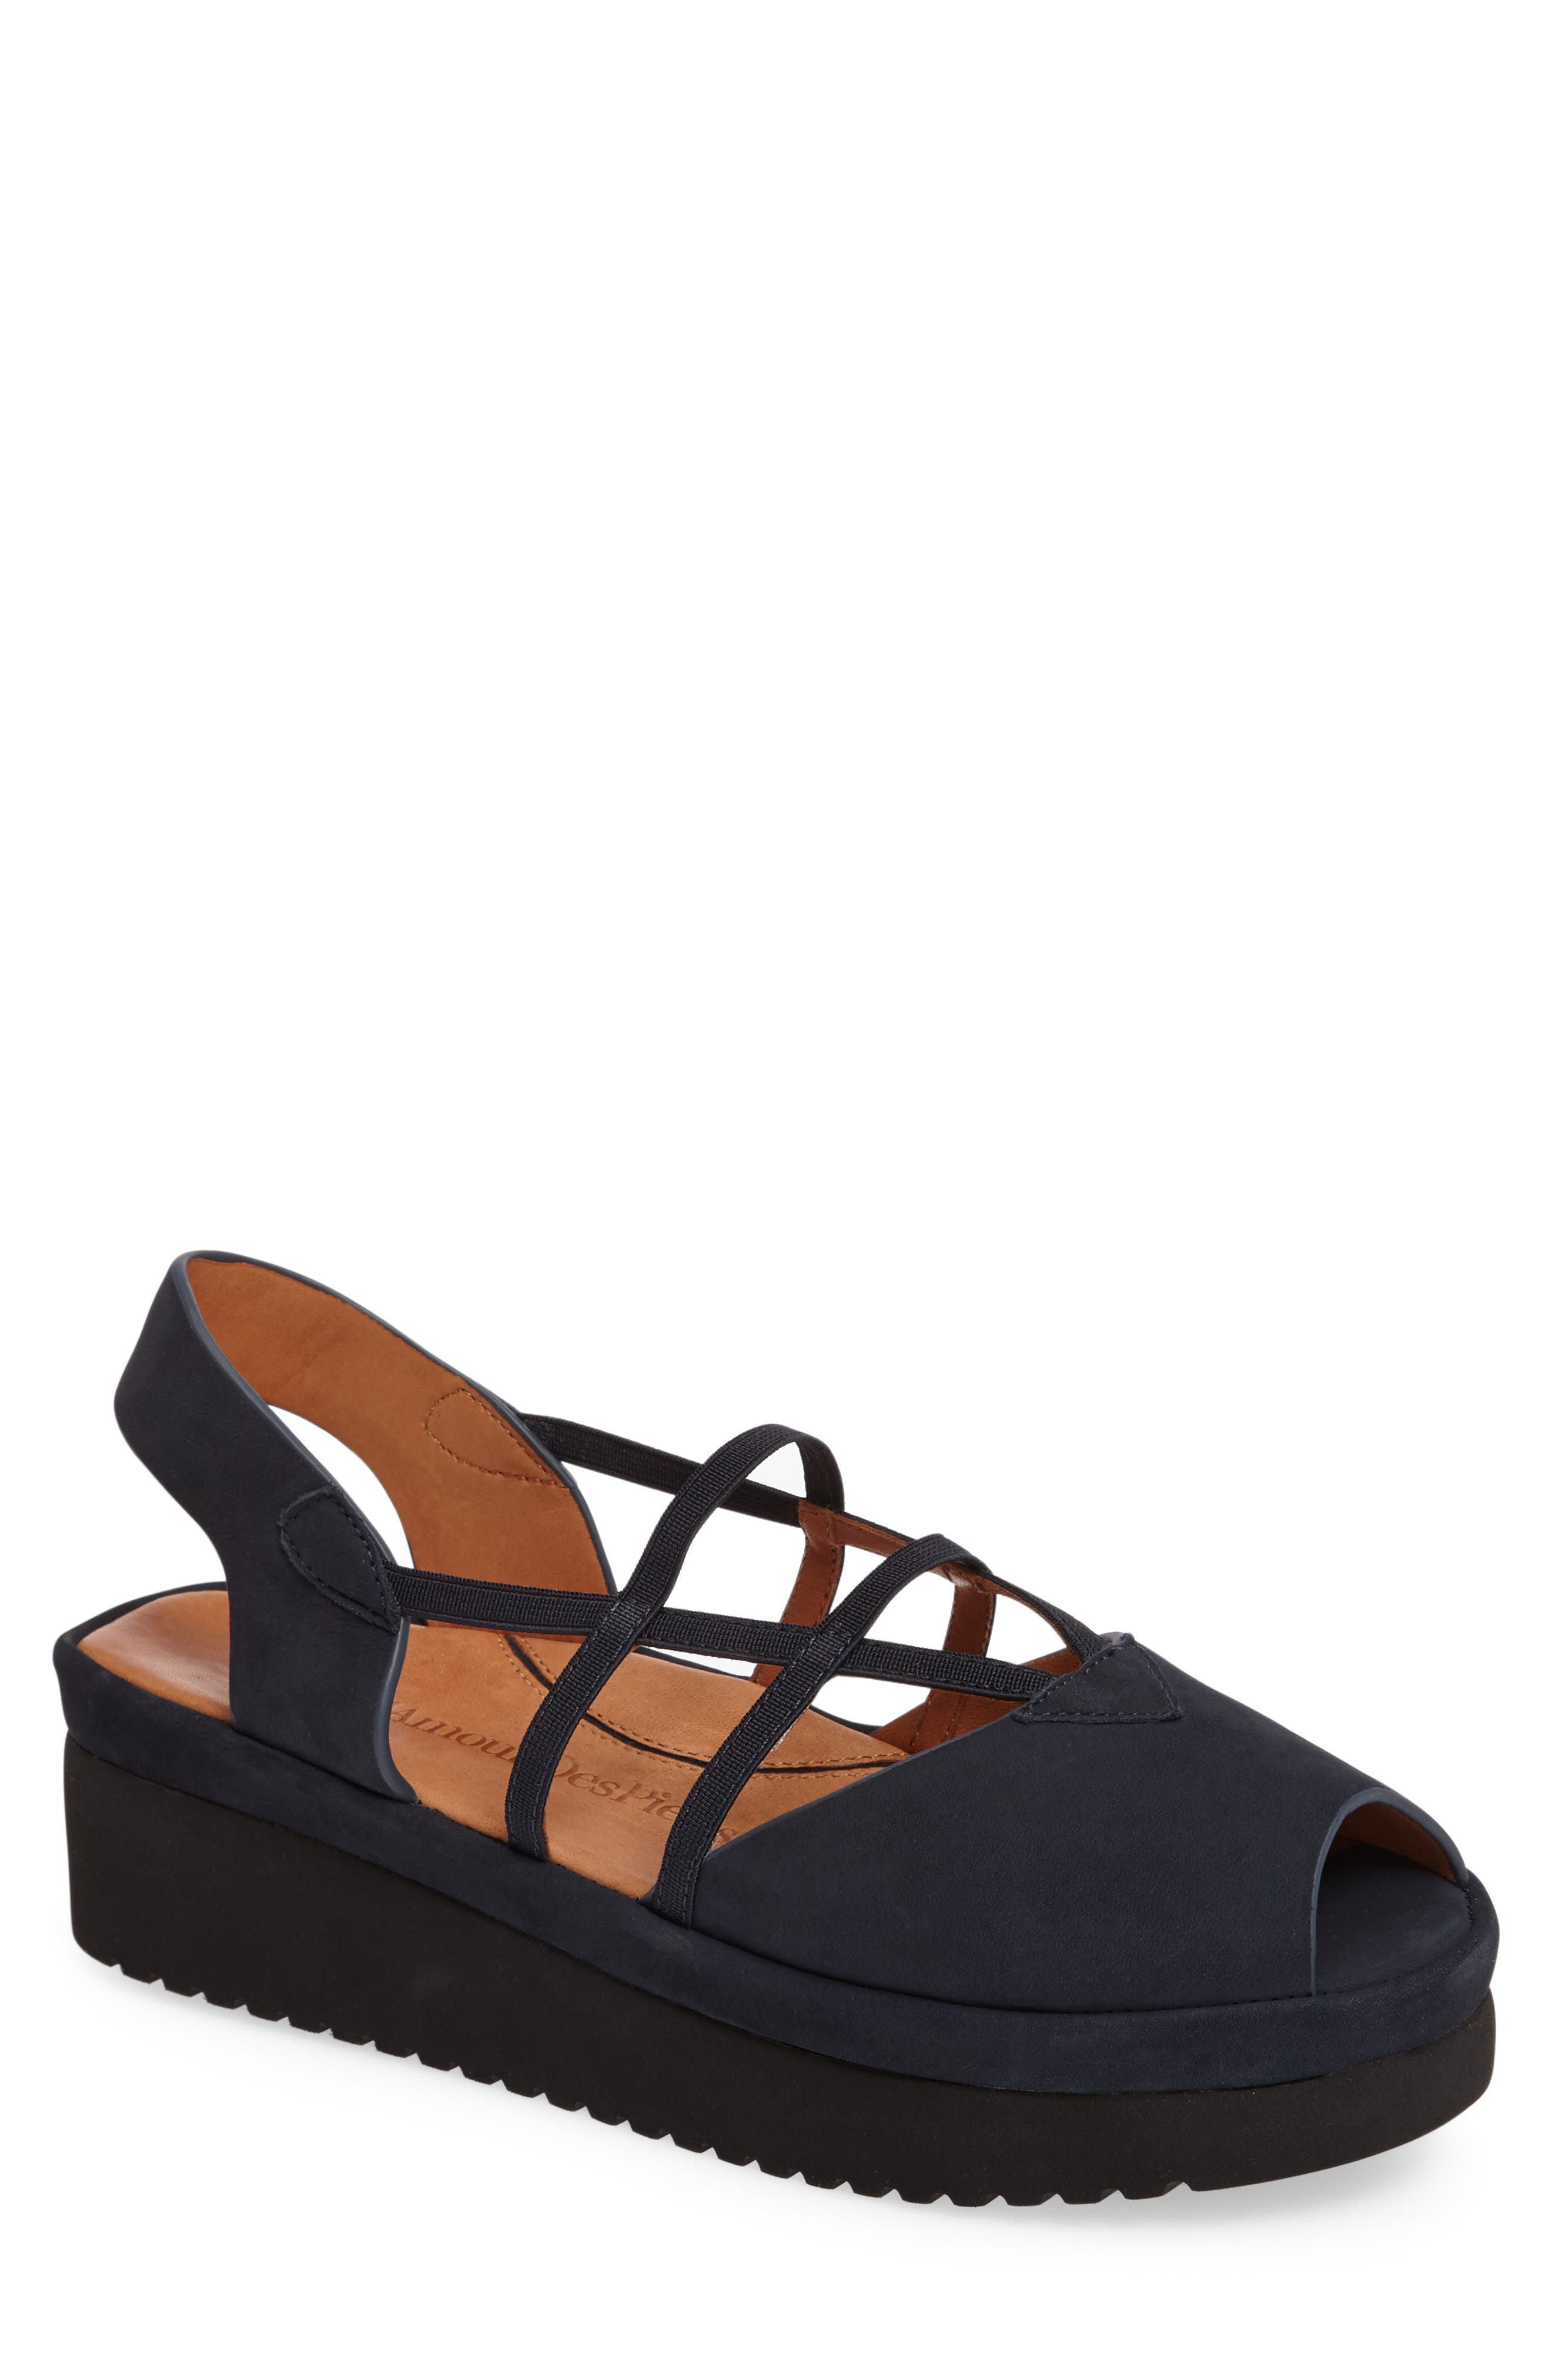 Adelais Platform Wedge Sandal,                         Main,                         color, NAVY NUBUCK